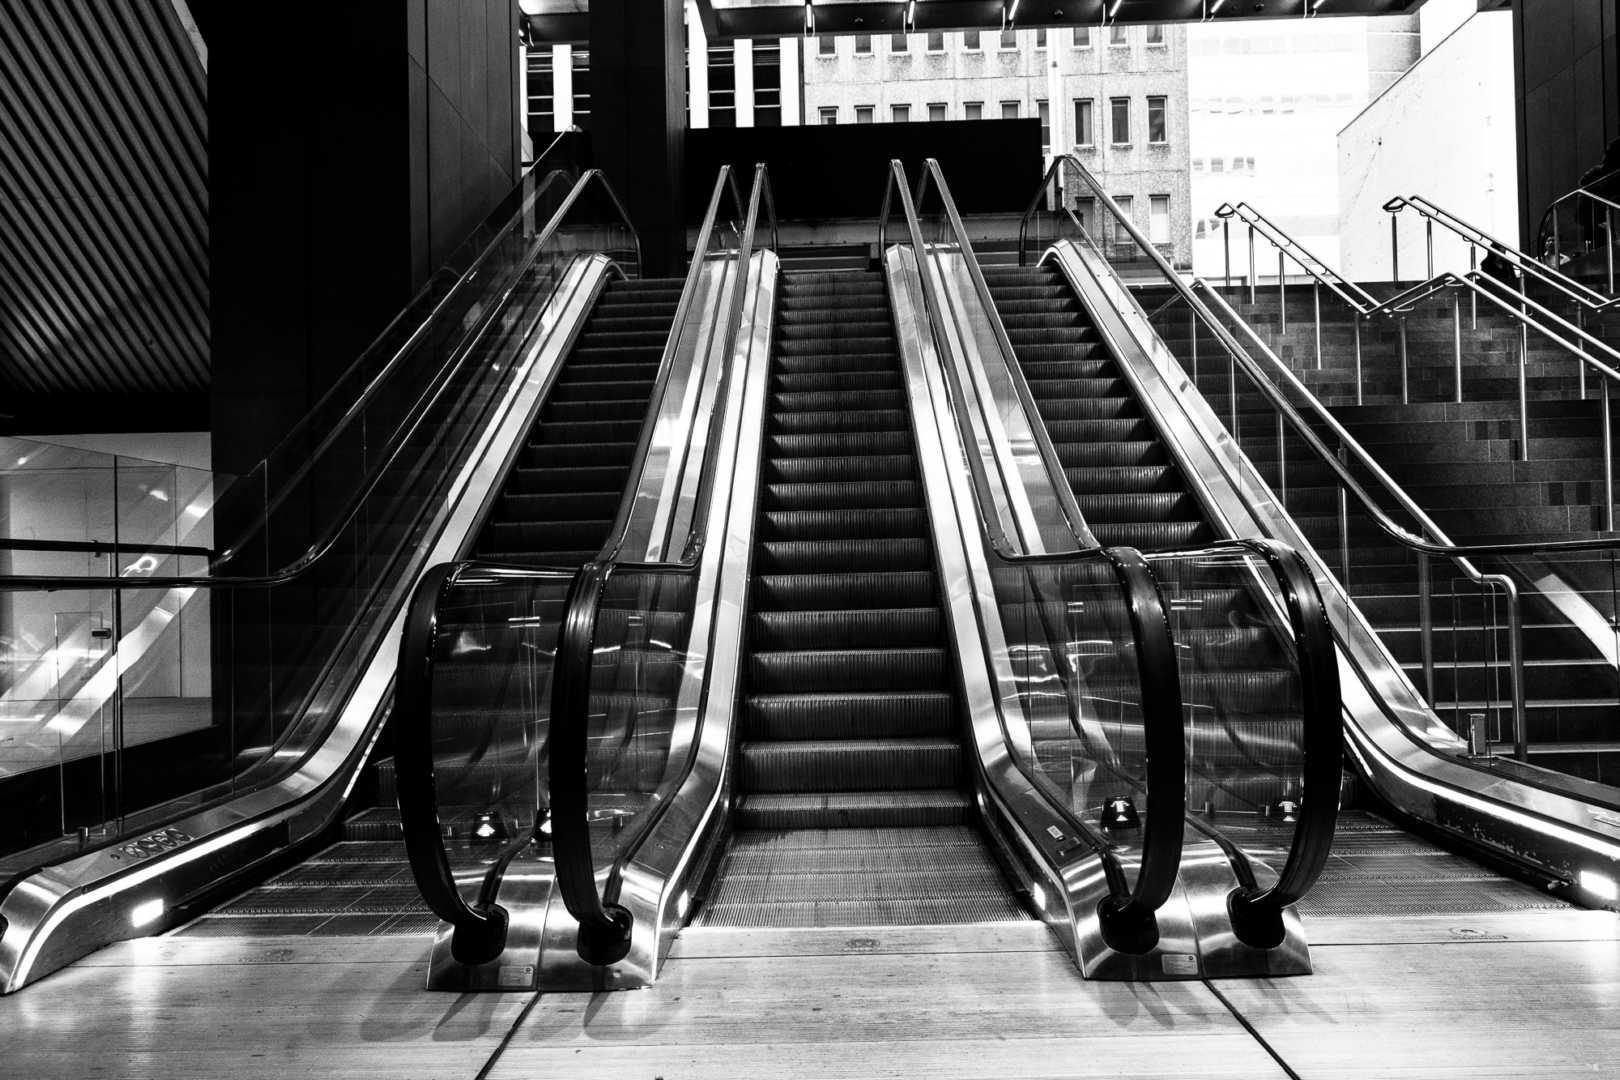 black and white image of an escalator